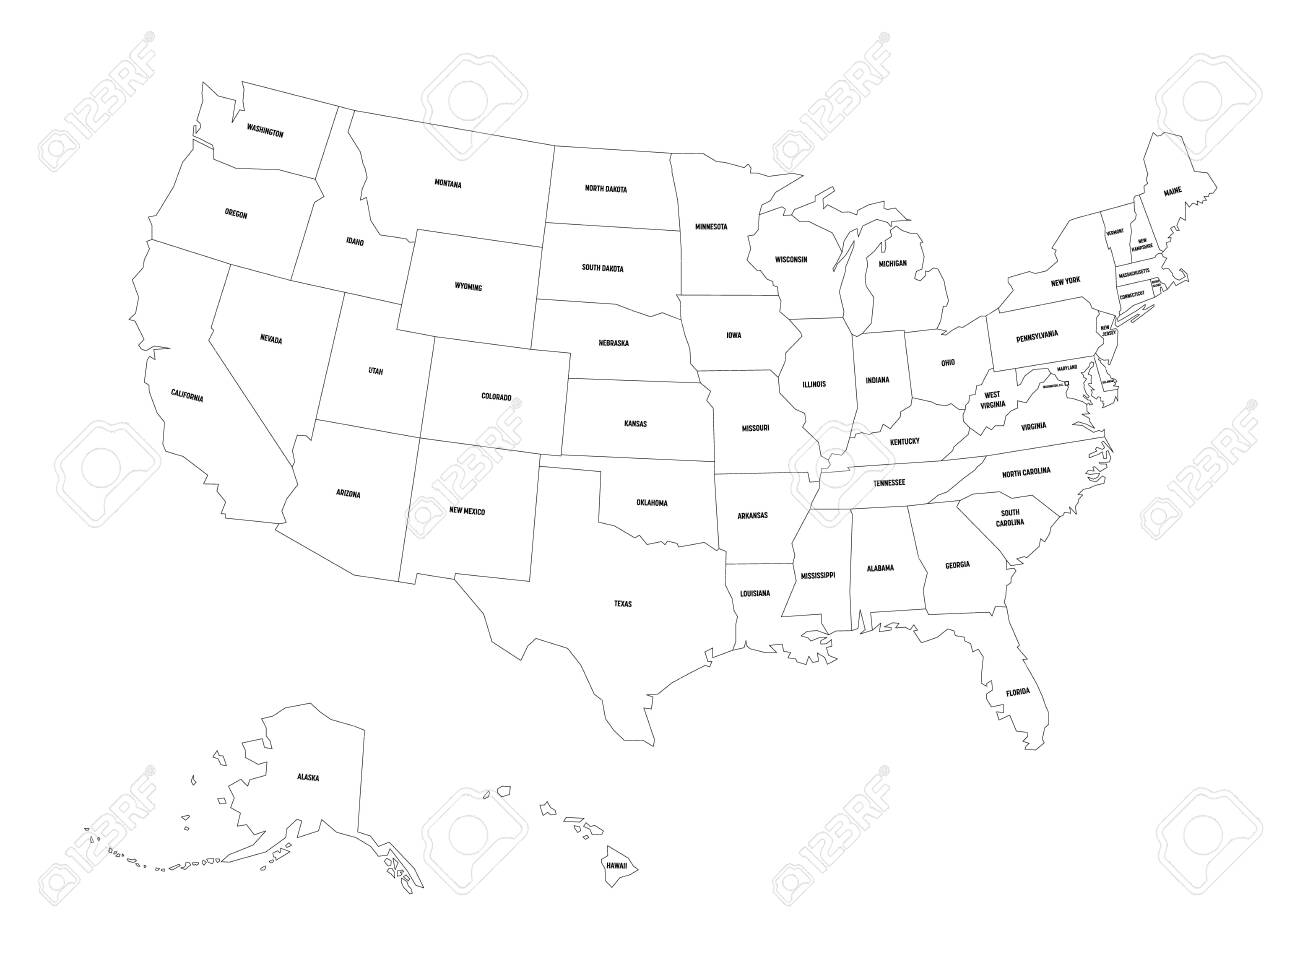 black and white map of united states Political Map Of United States Od America, USA. Simple Flat Black